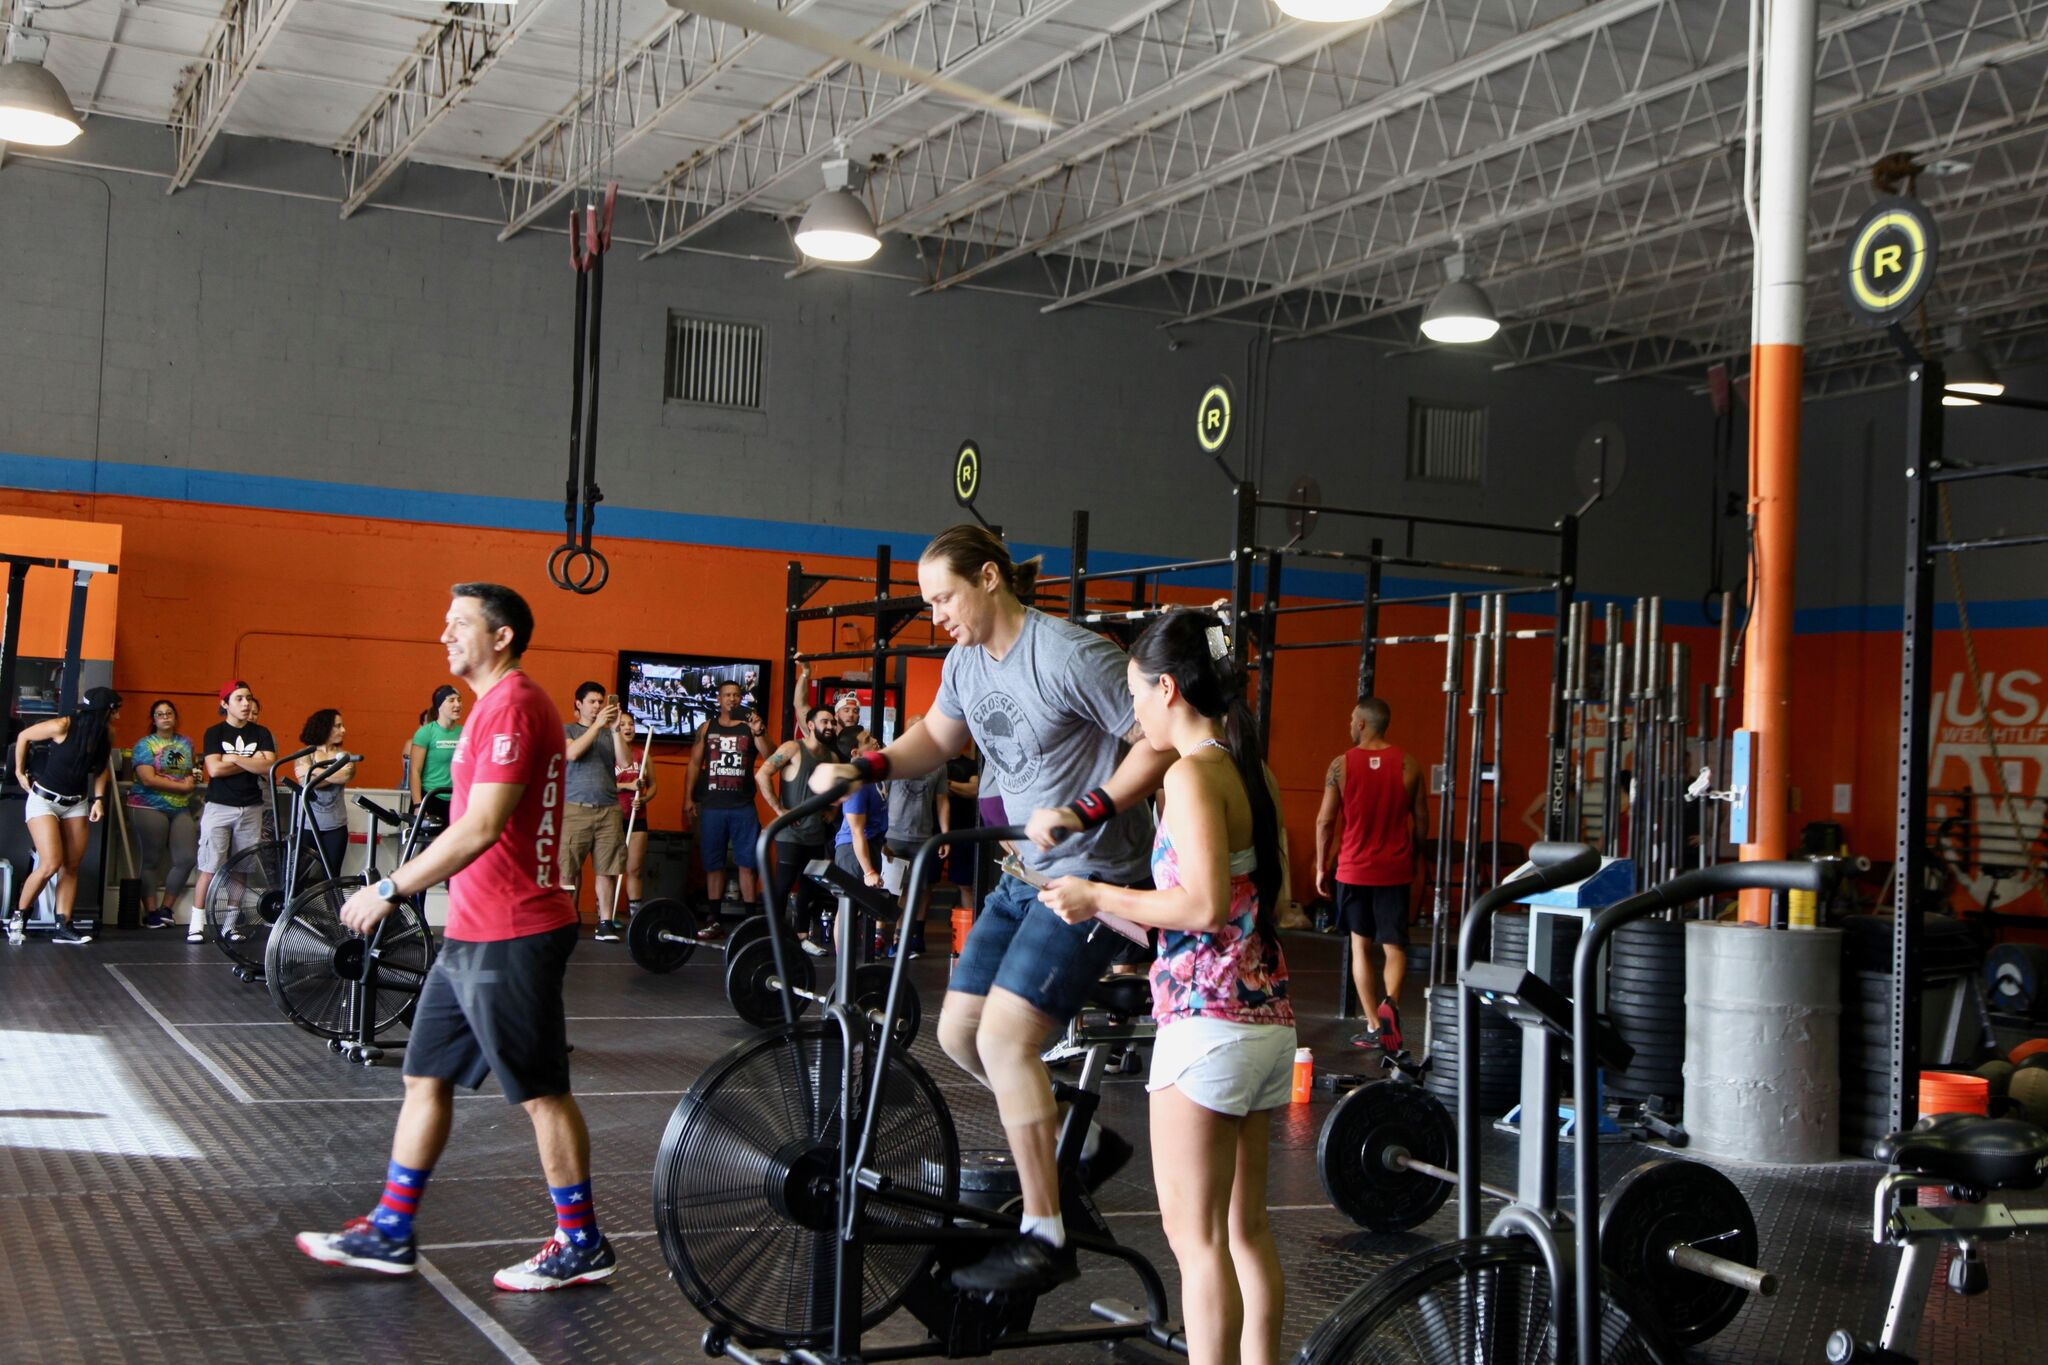 Best Gyms Fort Lauderdale Reviews – Power BSG10X